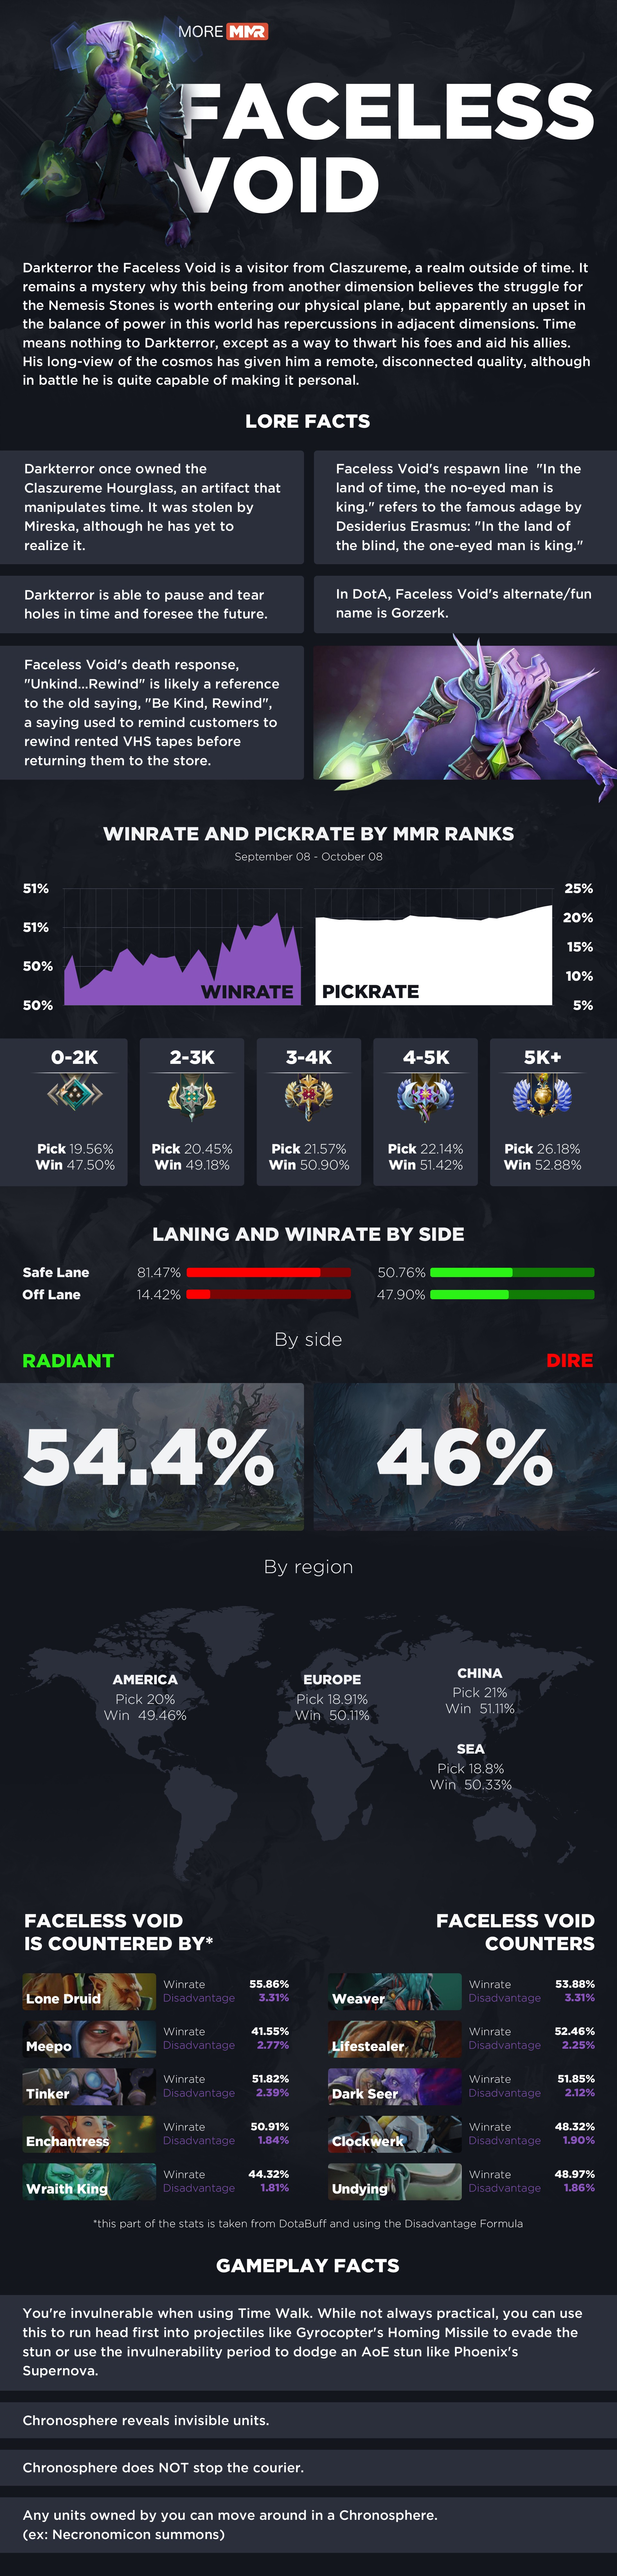 Faceless Void Counter : faceless, counter, Faceless, Void,, Guide:, Infographics, (Meta,, Lore,, Interesting, Stats,, Facts,, Counter, Picks), Patch, 7.22h, Moremmr.com, Medium